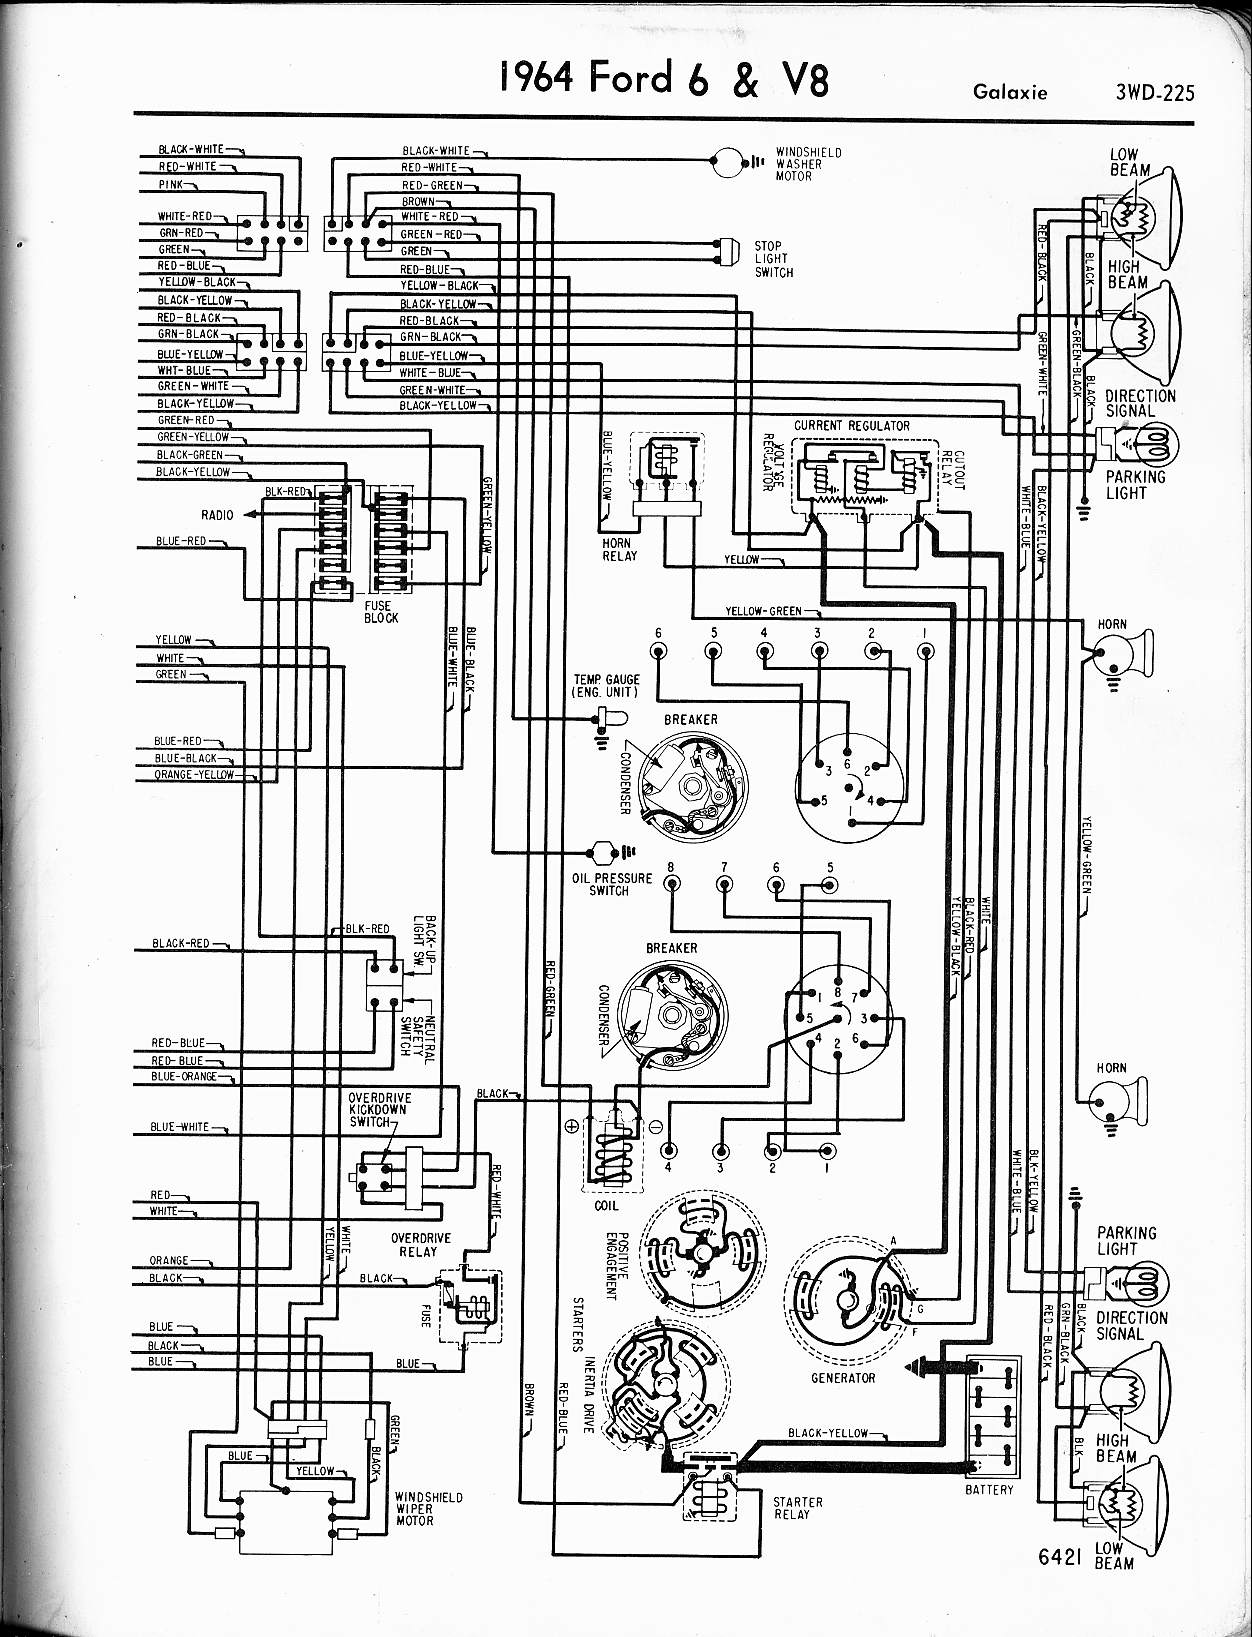 MWire5765 225 57 65 ford wiring diagrams Ford E 350 Wiring Diagrams at creativeand.co